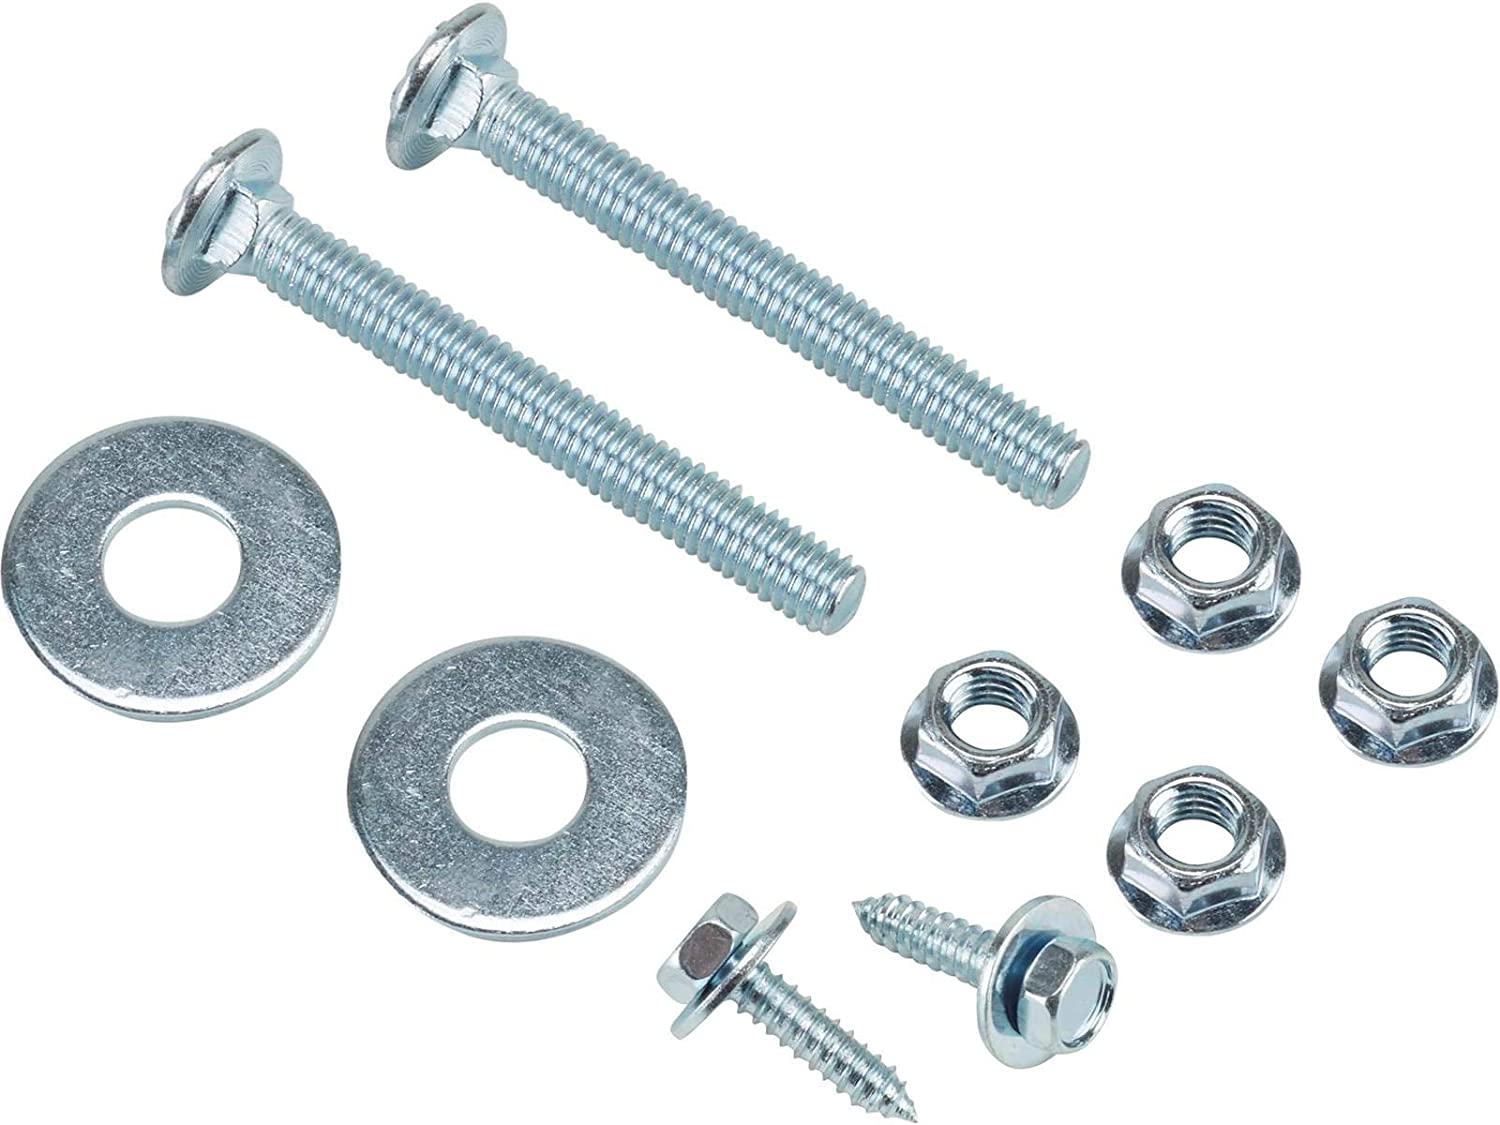 Replacement Fuel Tank Strap Bolt Industry No. 1 Nova Sale special price Chevelle for Camaro Kit